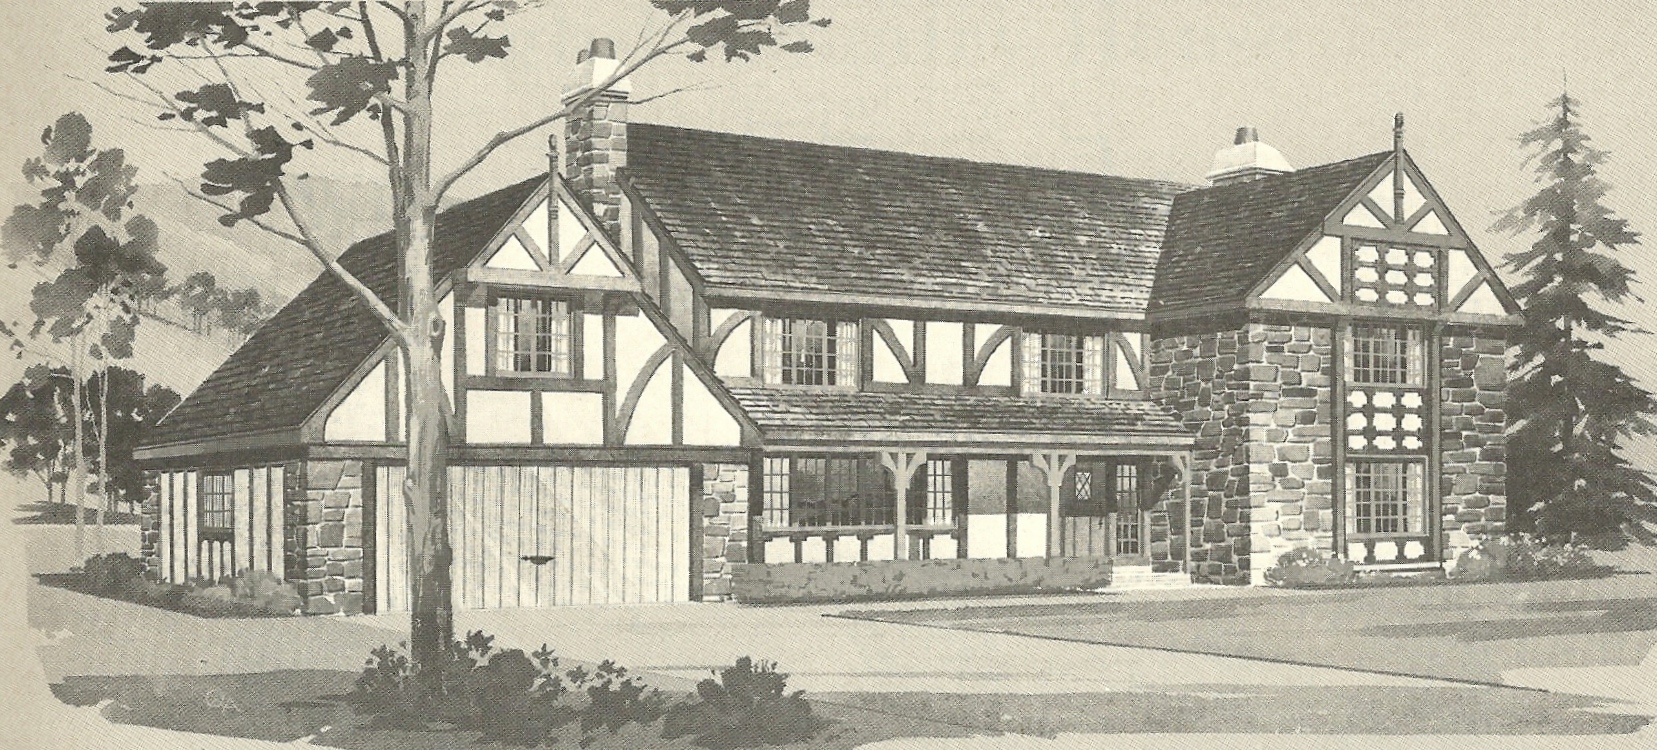 Vintage house plans 1970s english style tudor homes for New houses that look old plans